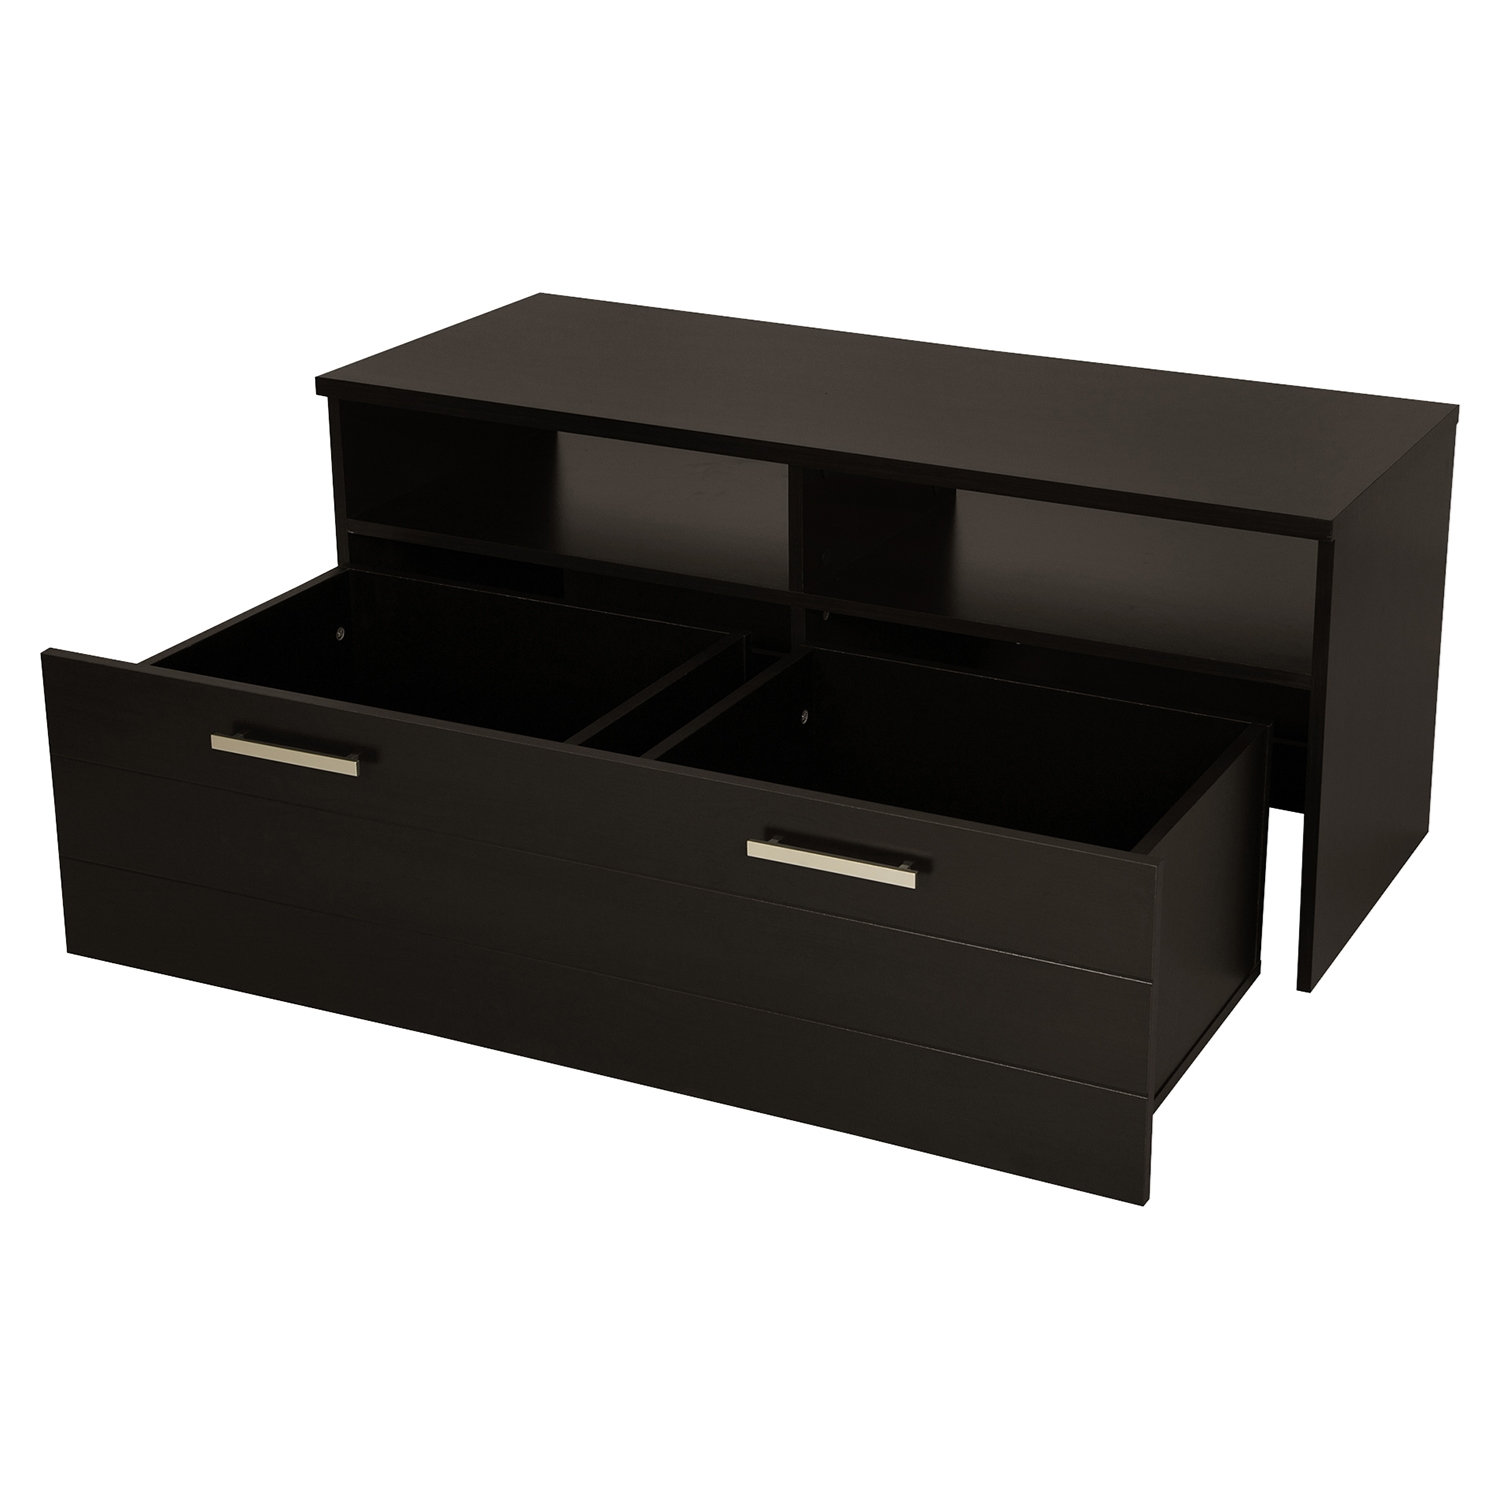 Jambory TV Stand - Storage Bins, Casters, Chocolate - SS-4919605